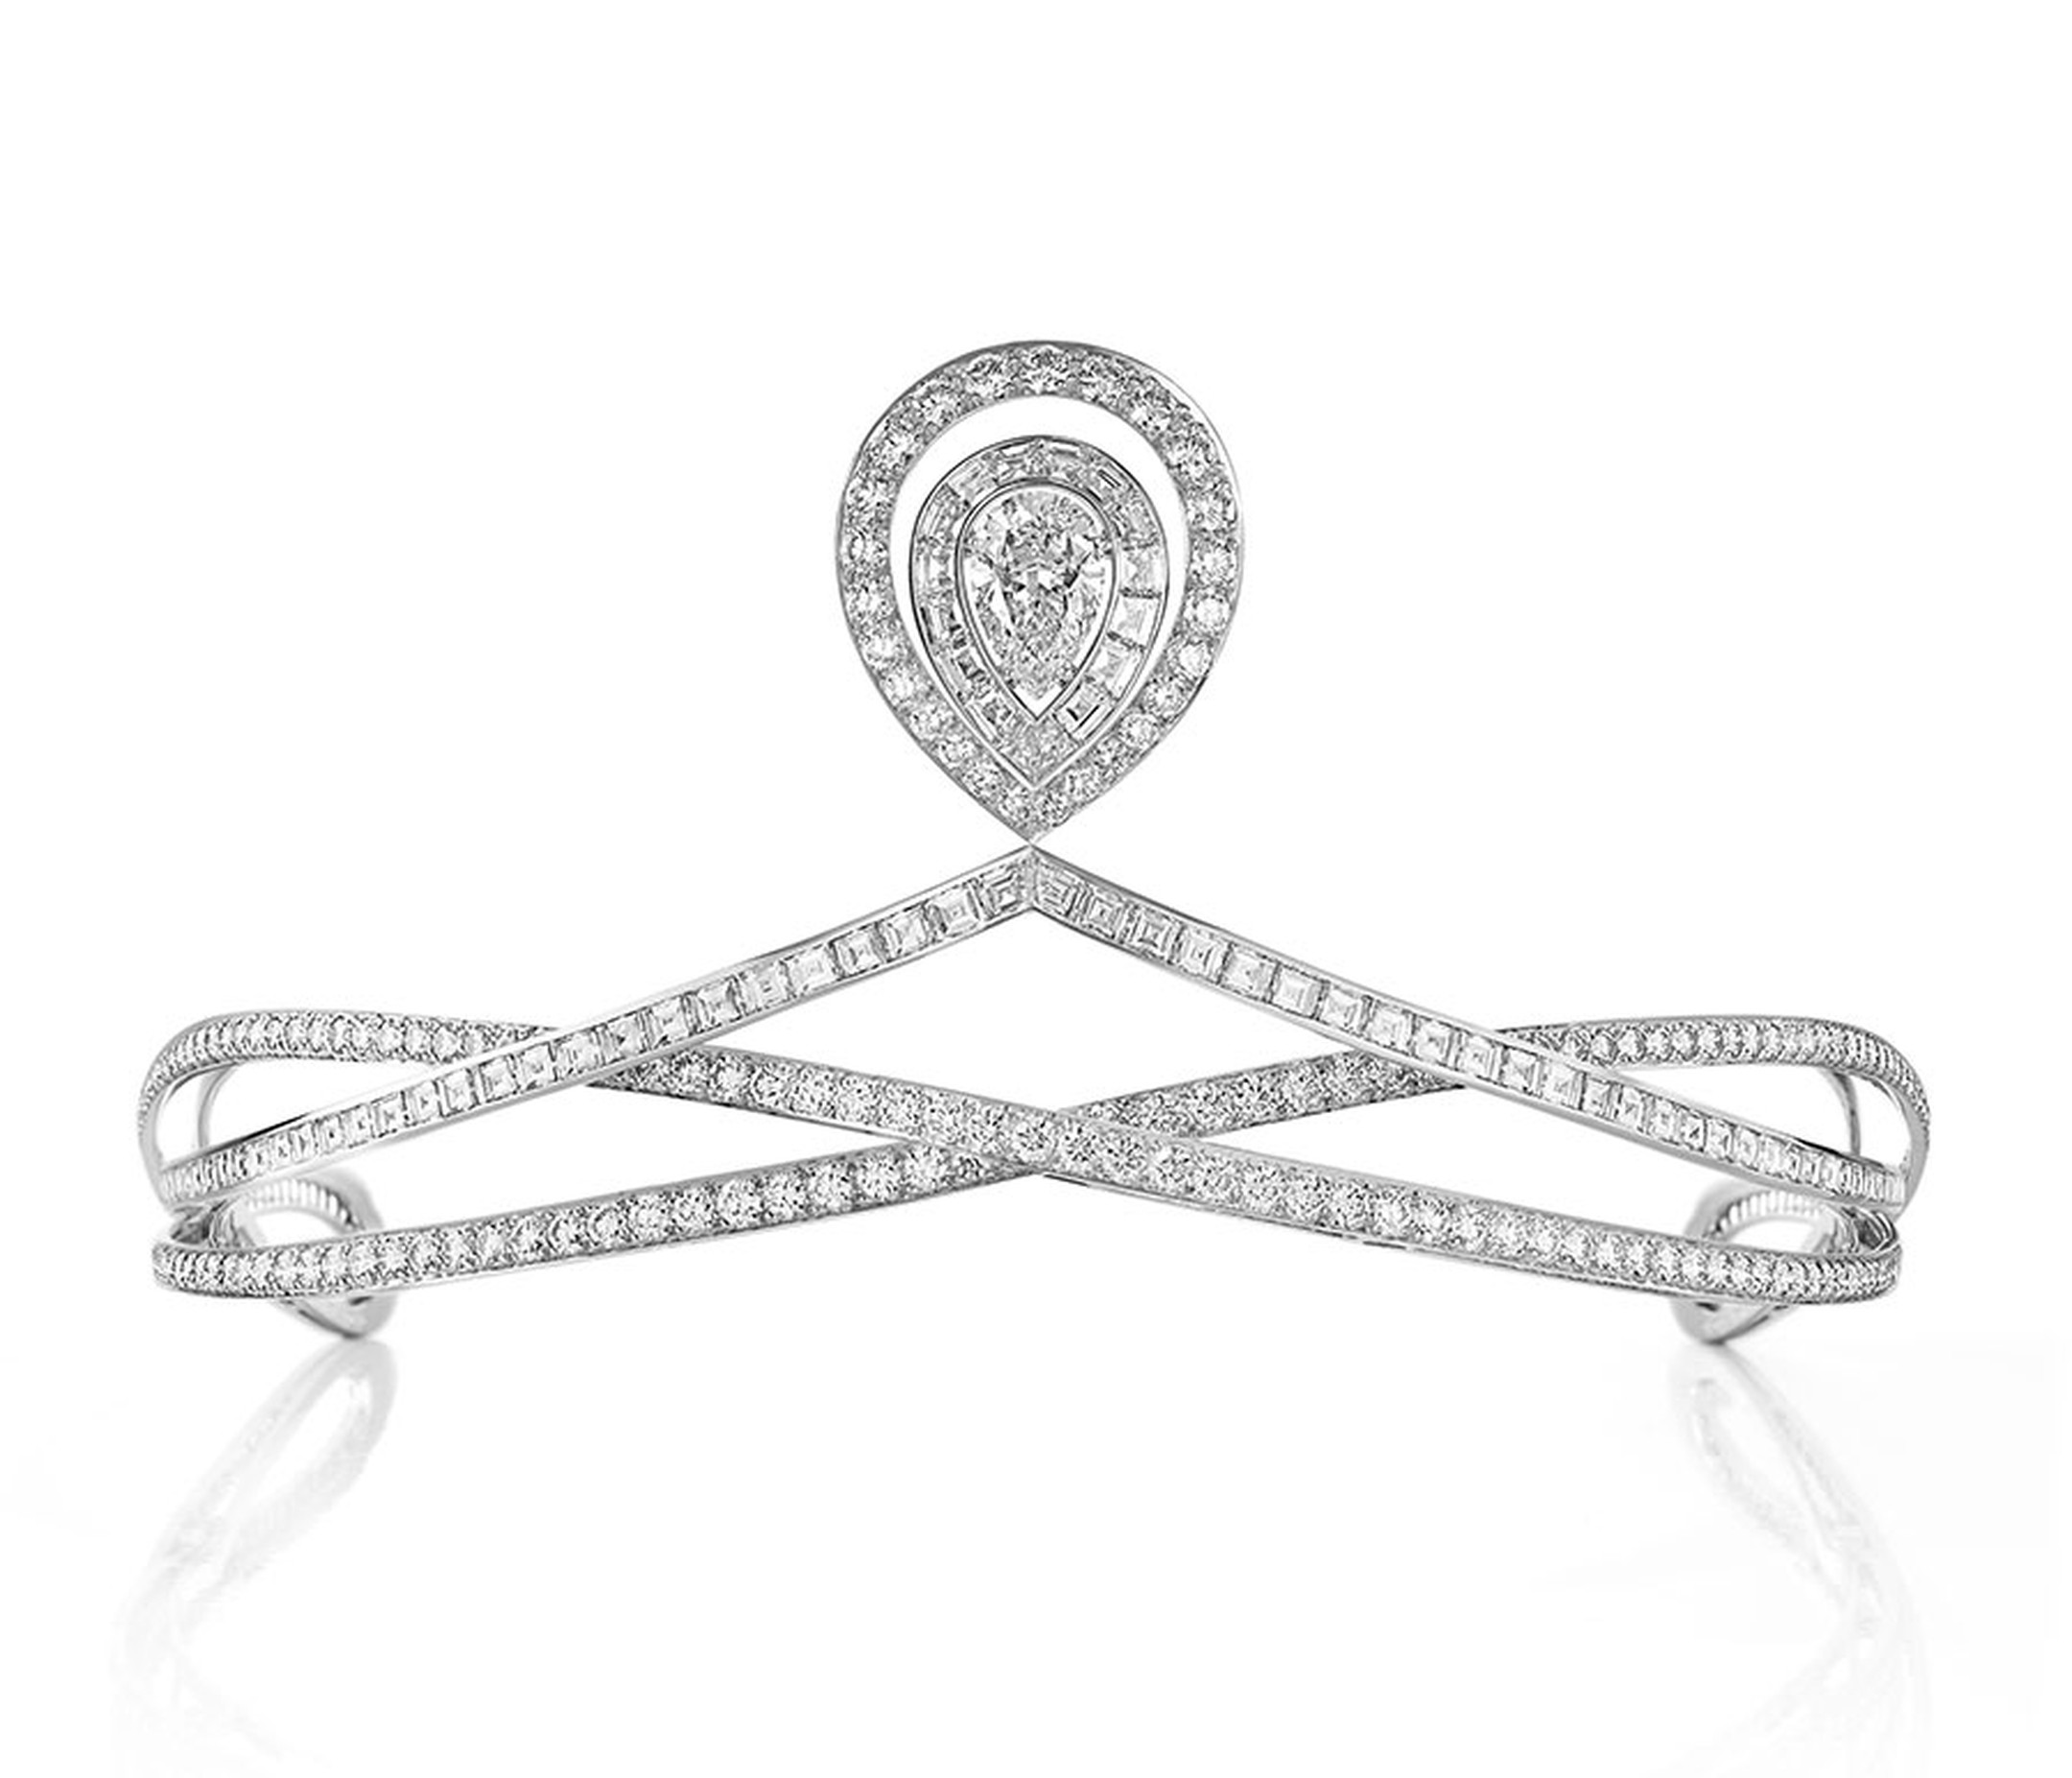 Chaumet-diademe_1_photo.jpg